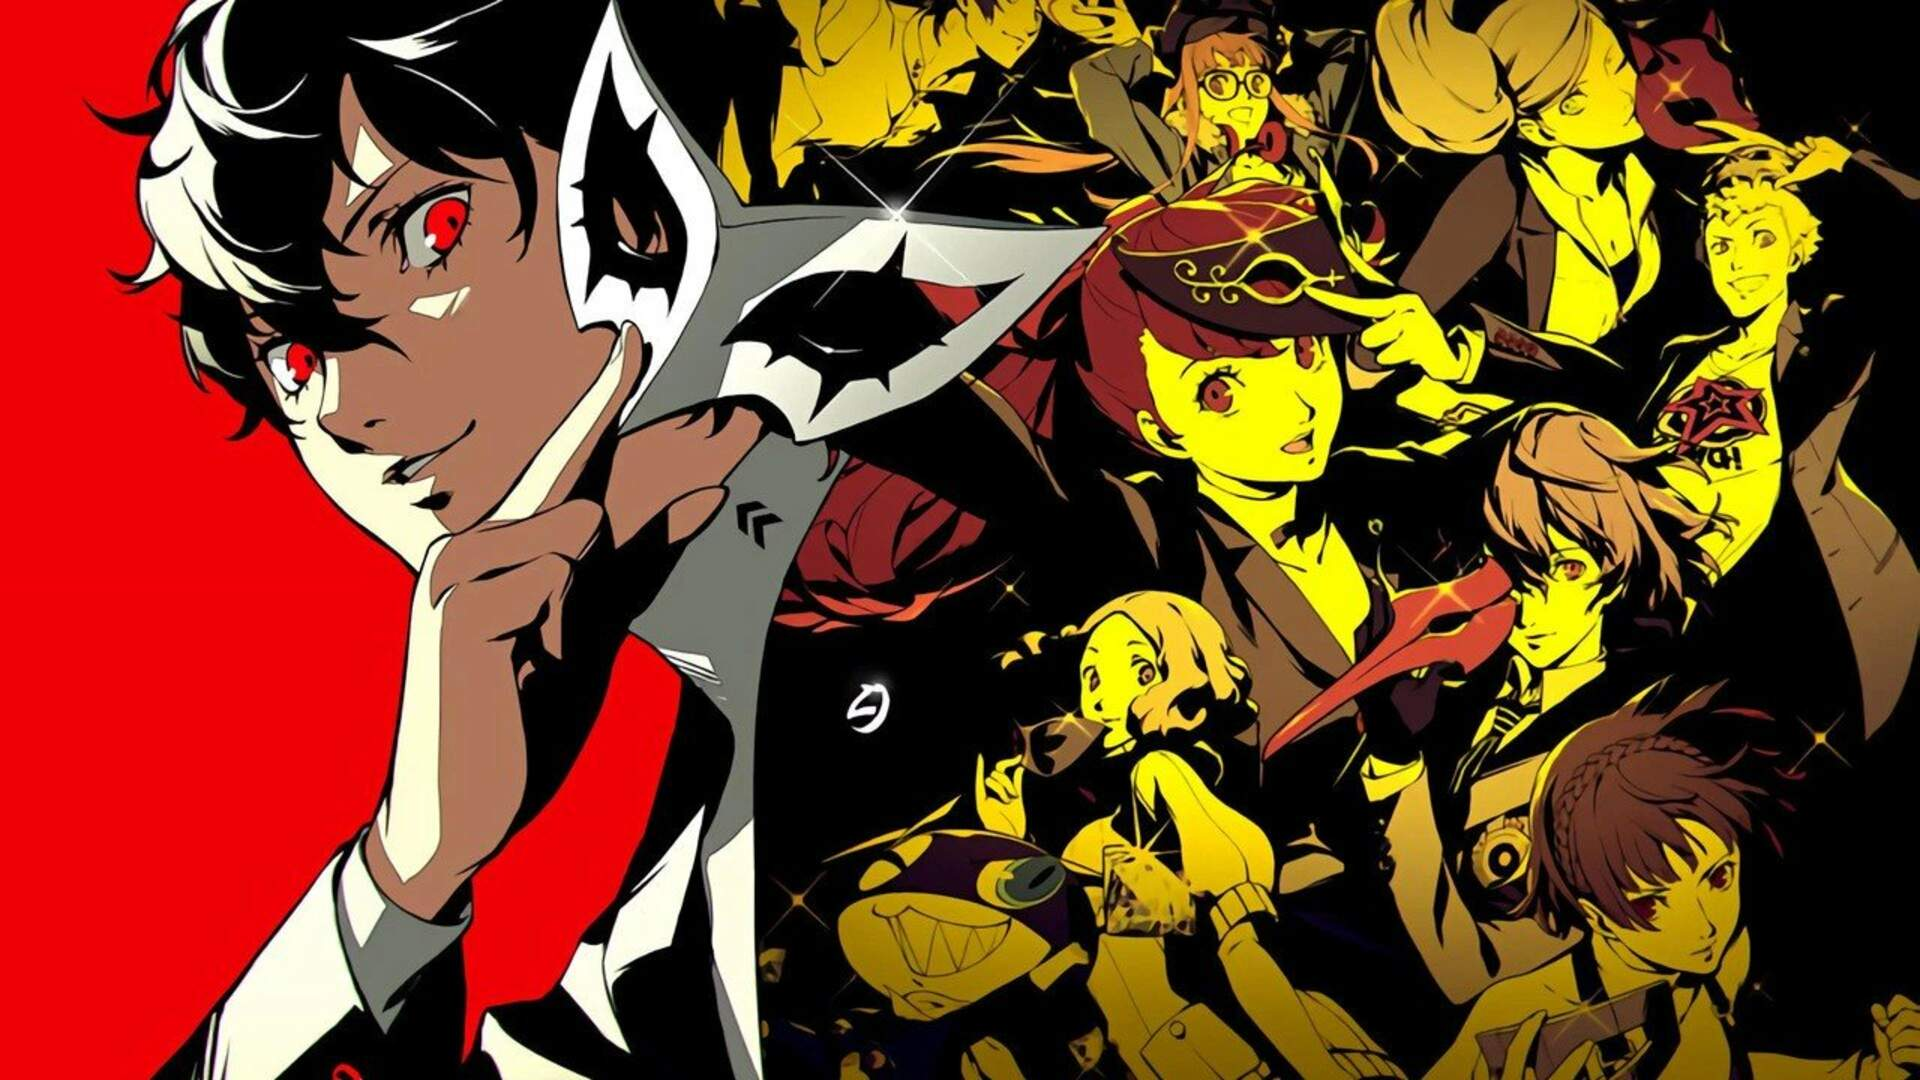 Persona 5 Royal Gave Us the Series' Greatest Villain